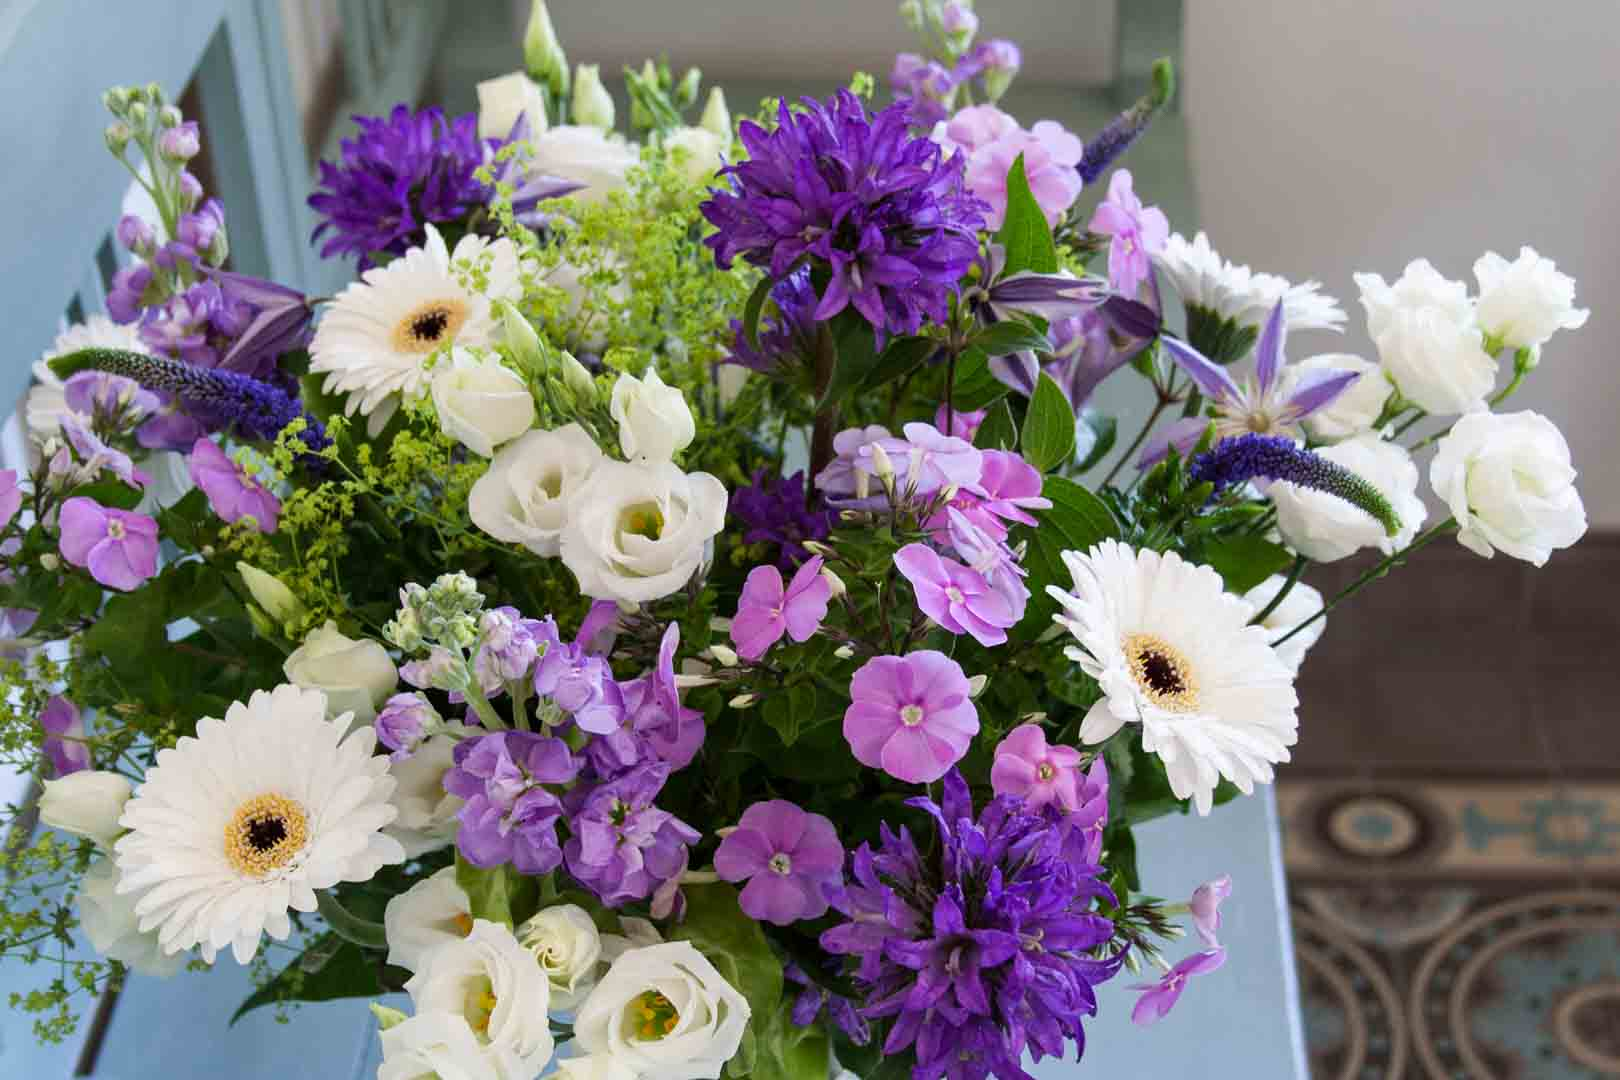 Bouquets archieven cloverhome mixed flower bouquet in shades of purple and violet izmirmasajfo Images